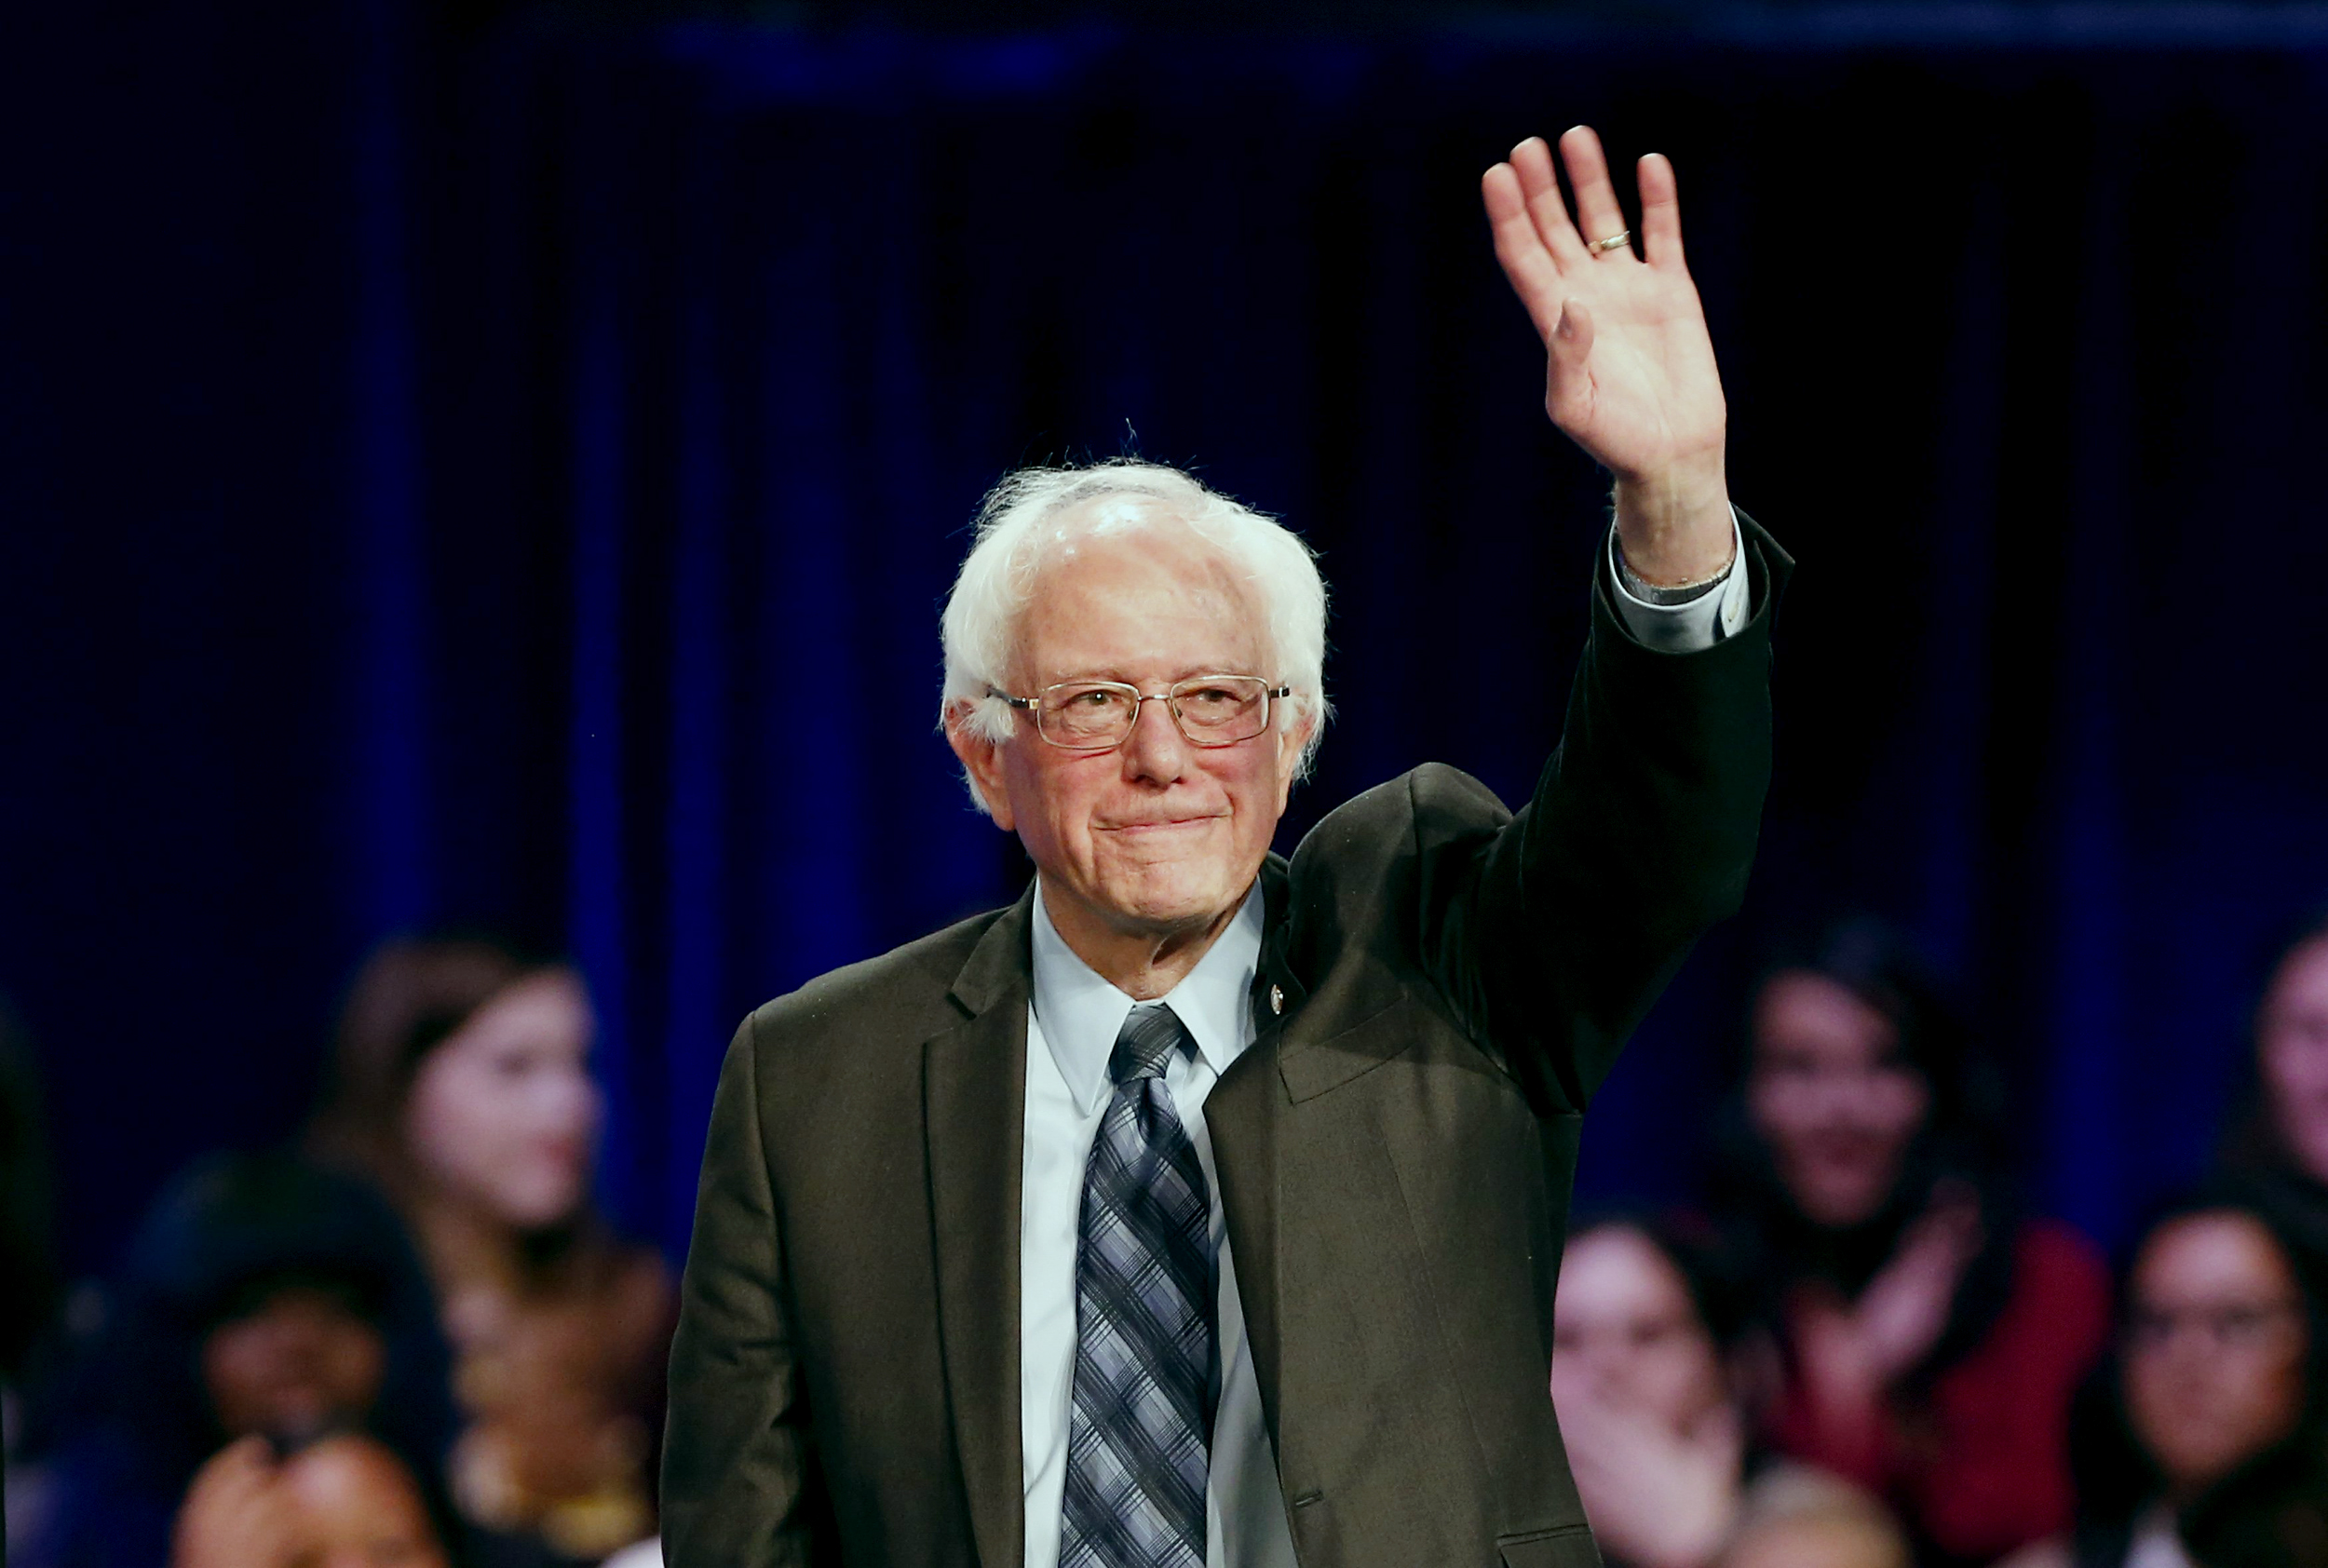 bernie black personals A bernie sanders dating site crashed yesterday after receiving over a million visitors on it's first day.